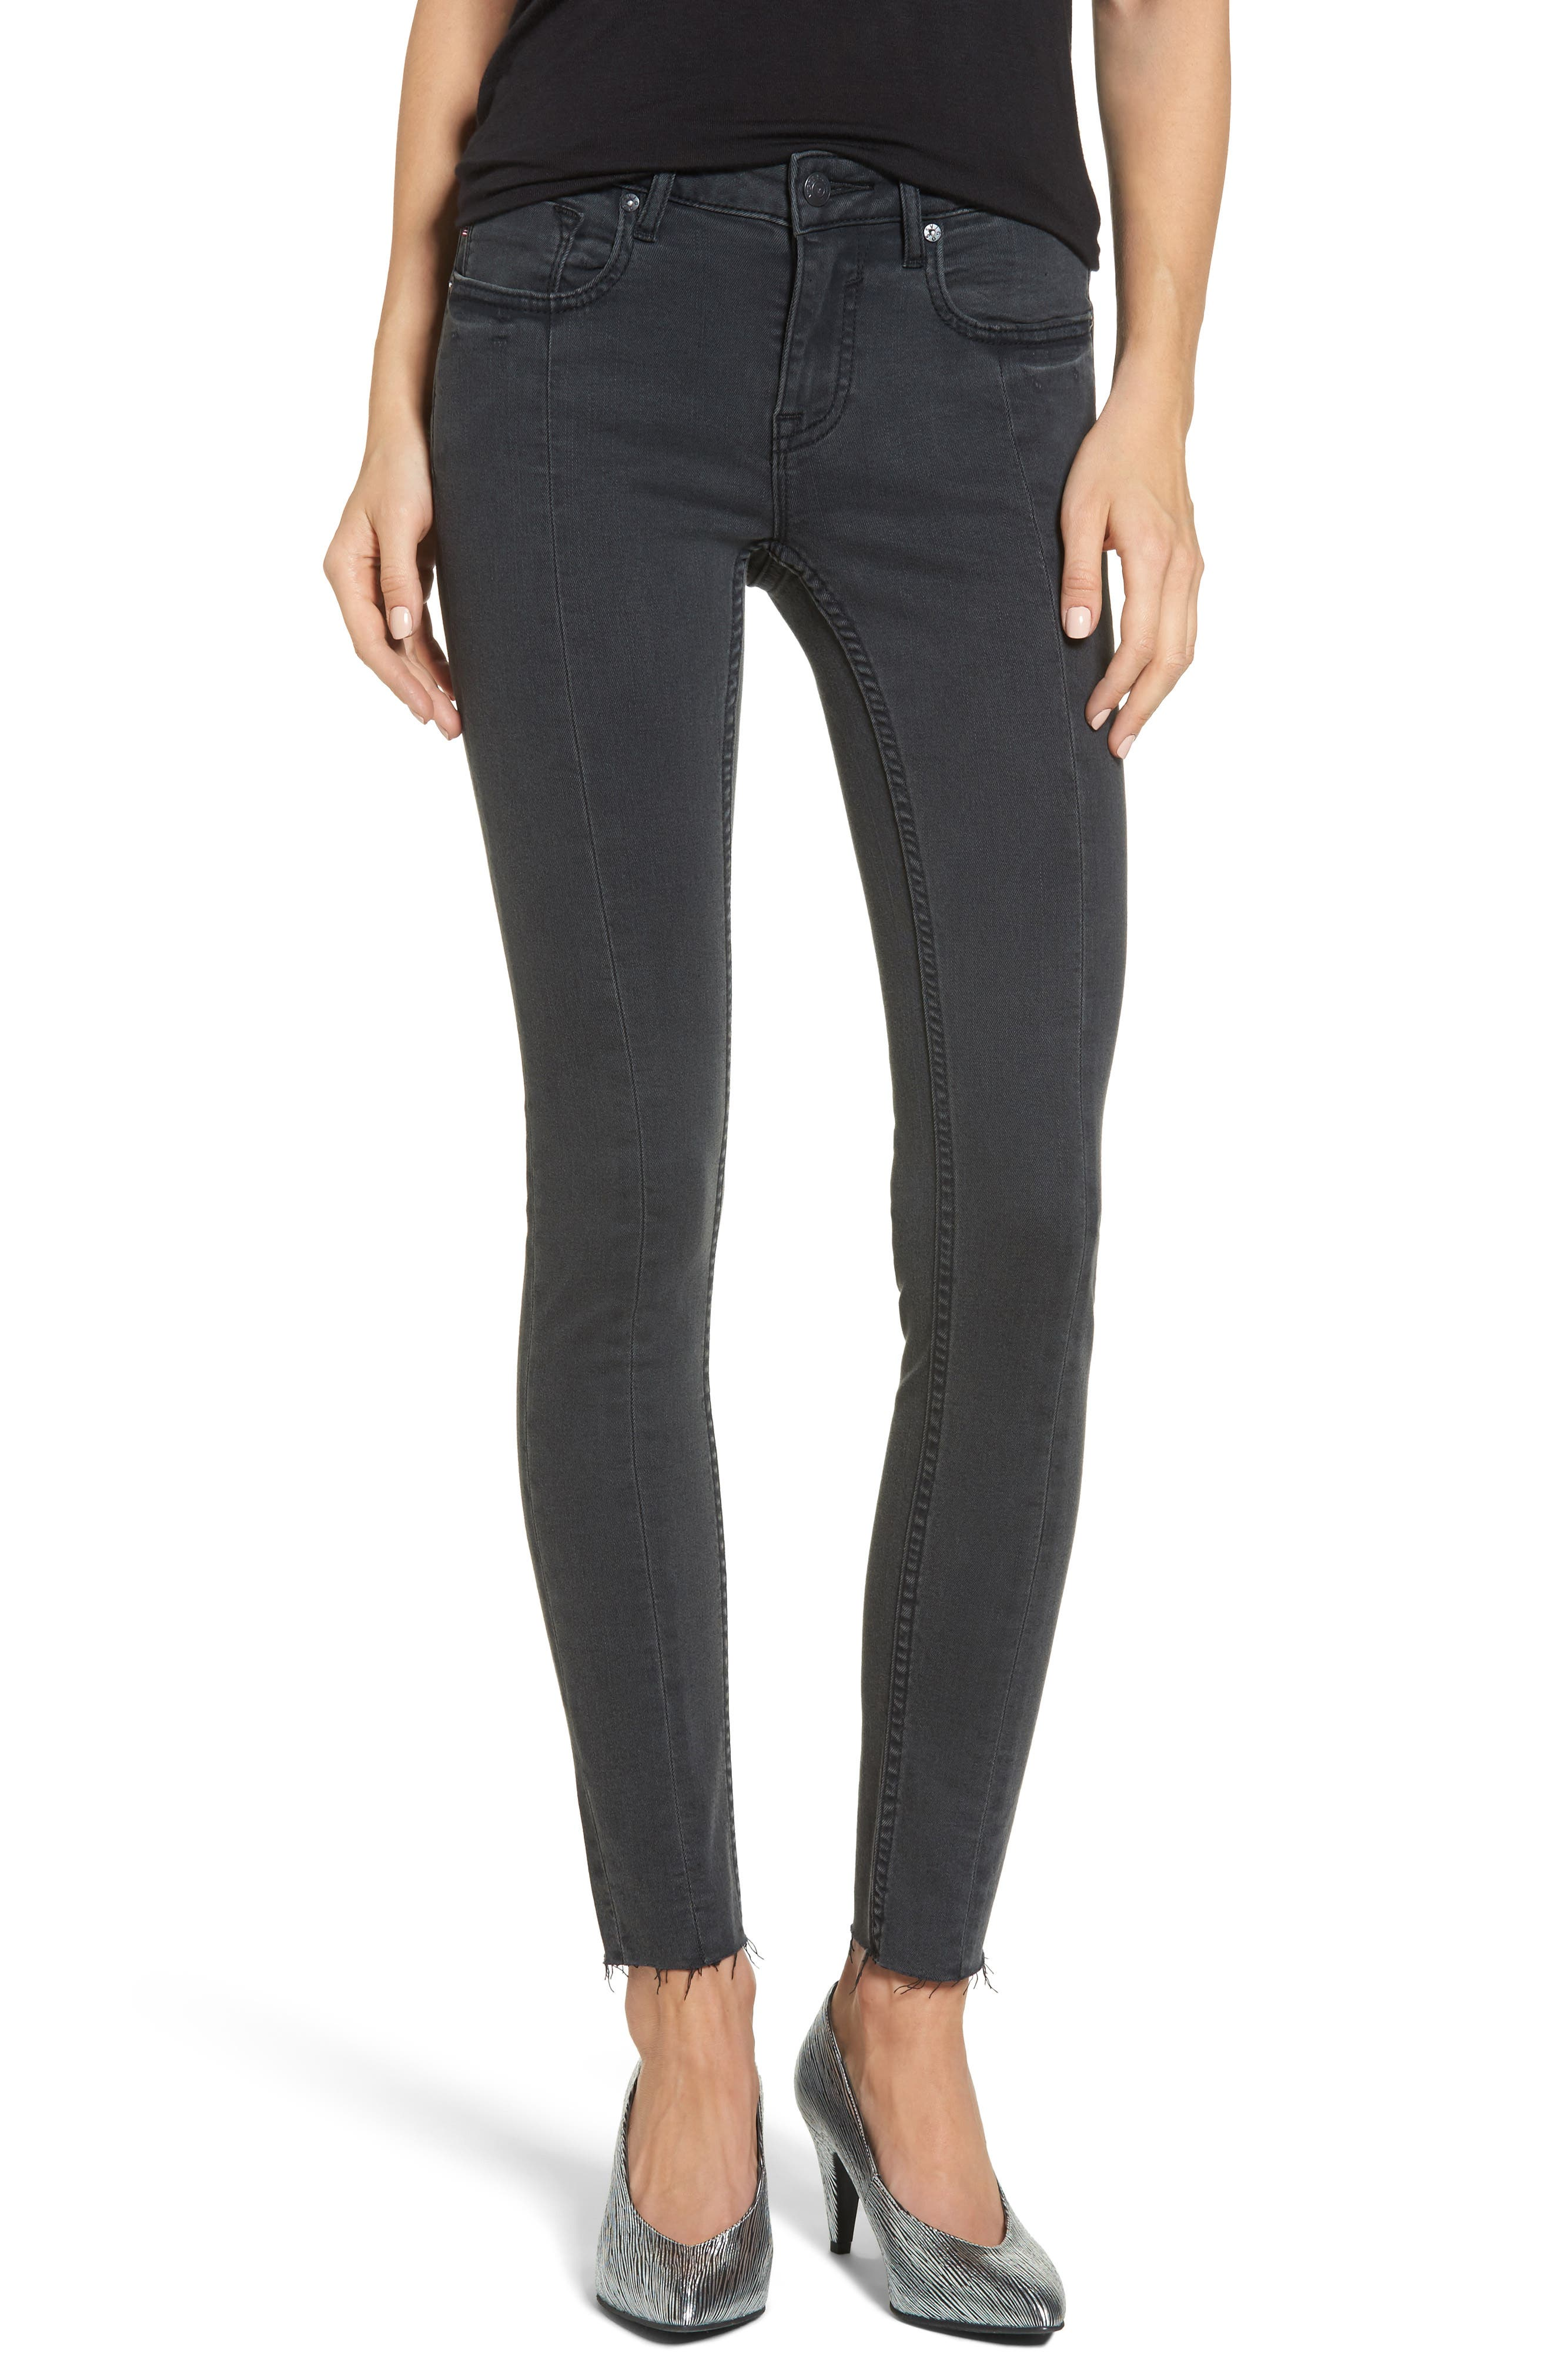 Jagger Front Seam Skinny Jeans,                         Main,                         color, Washed Black